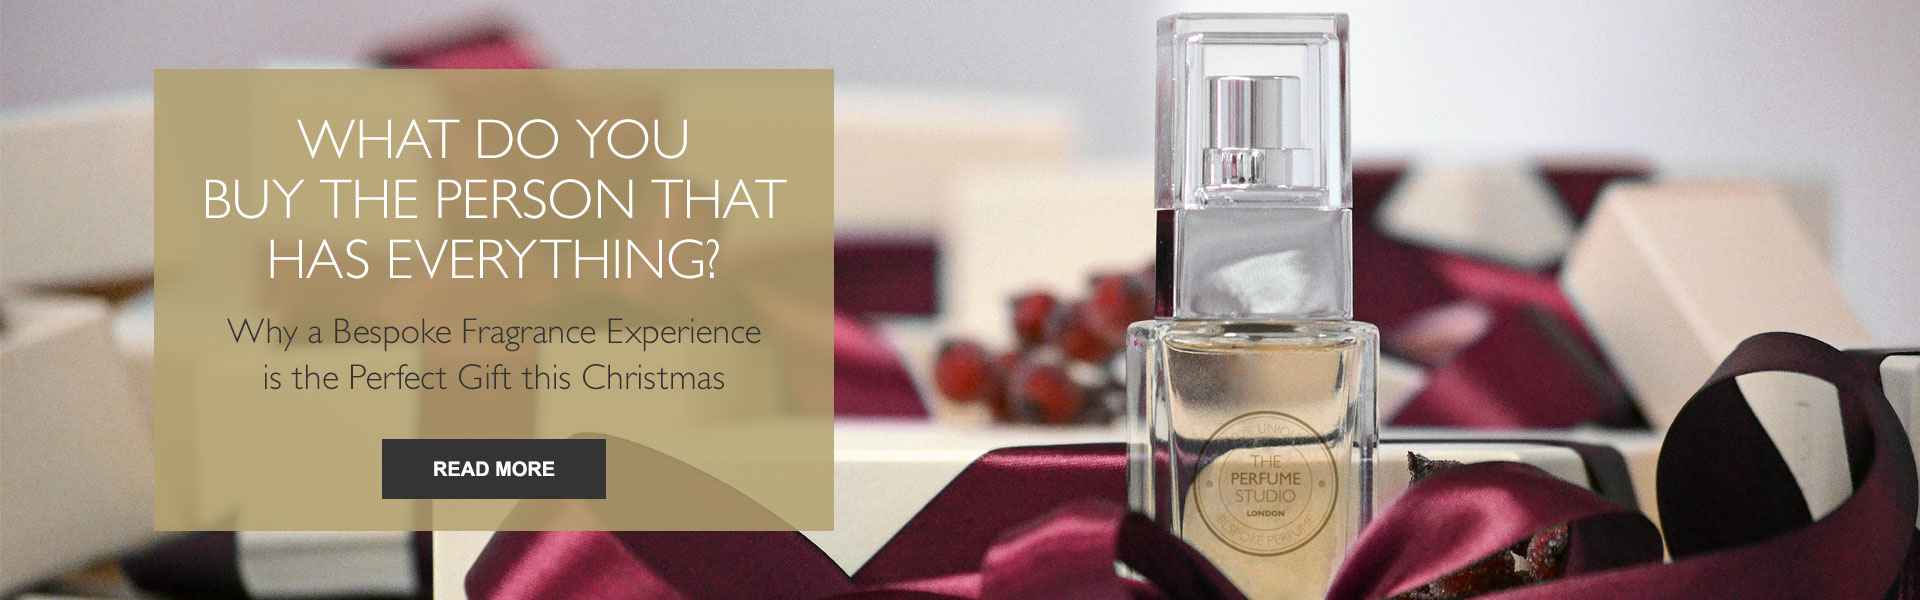 What do you buy the person that has everything? Why a Bespoke Fragrance Experience is the Perfect Gift this Christmas